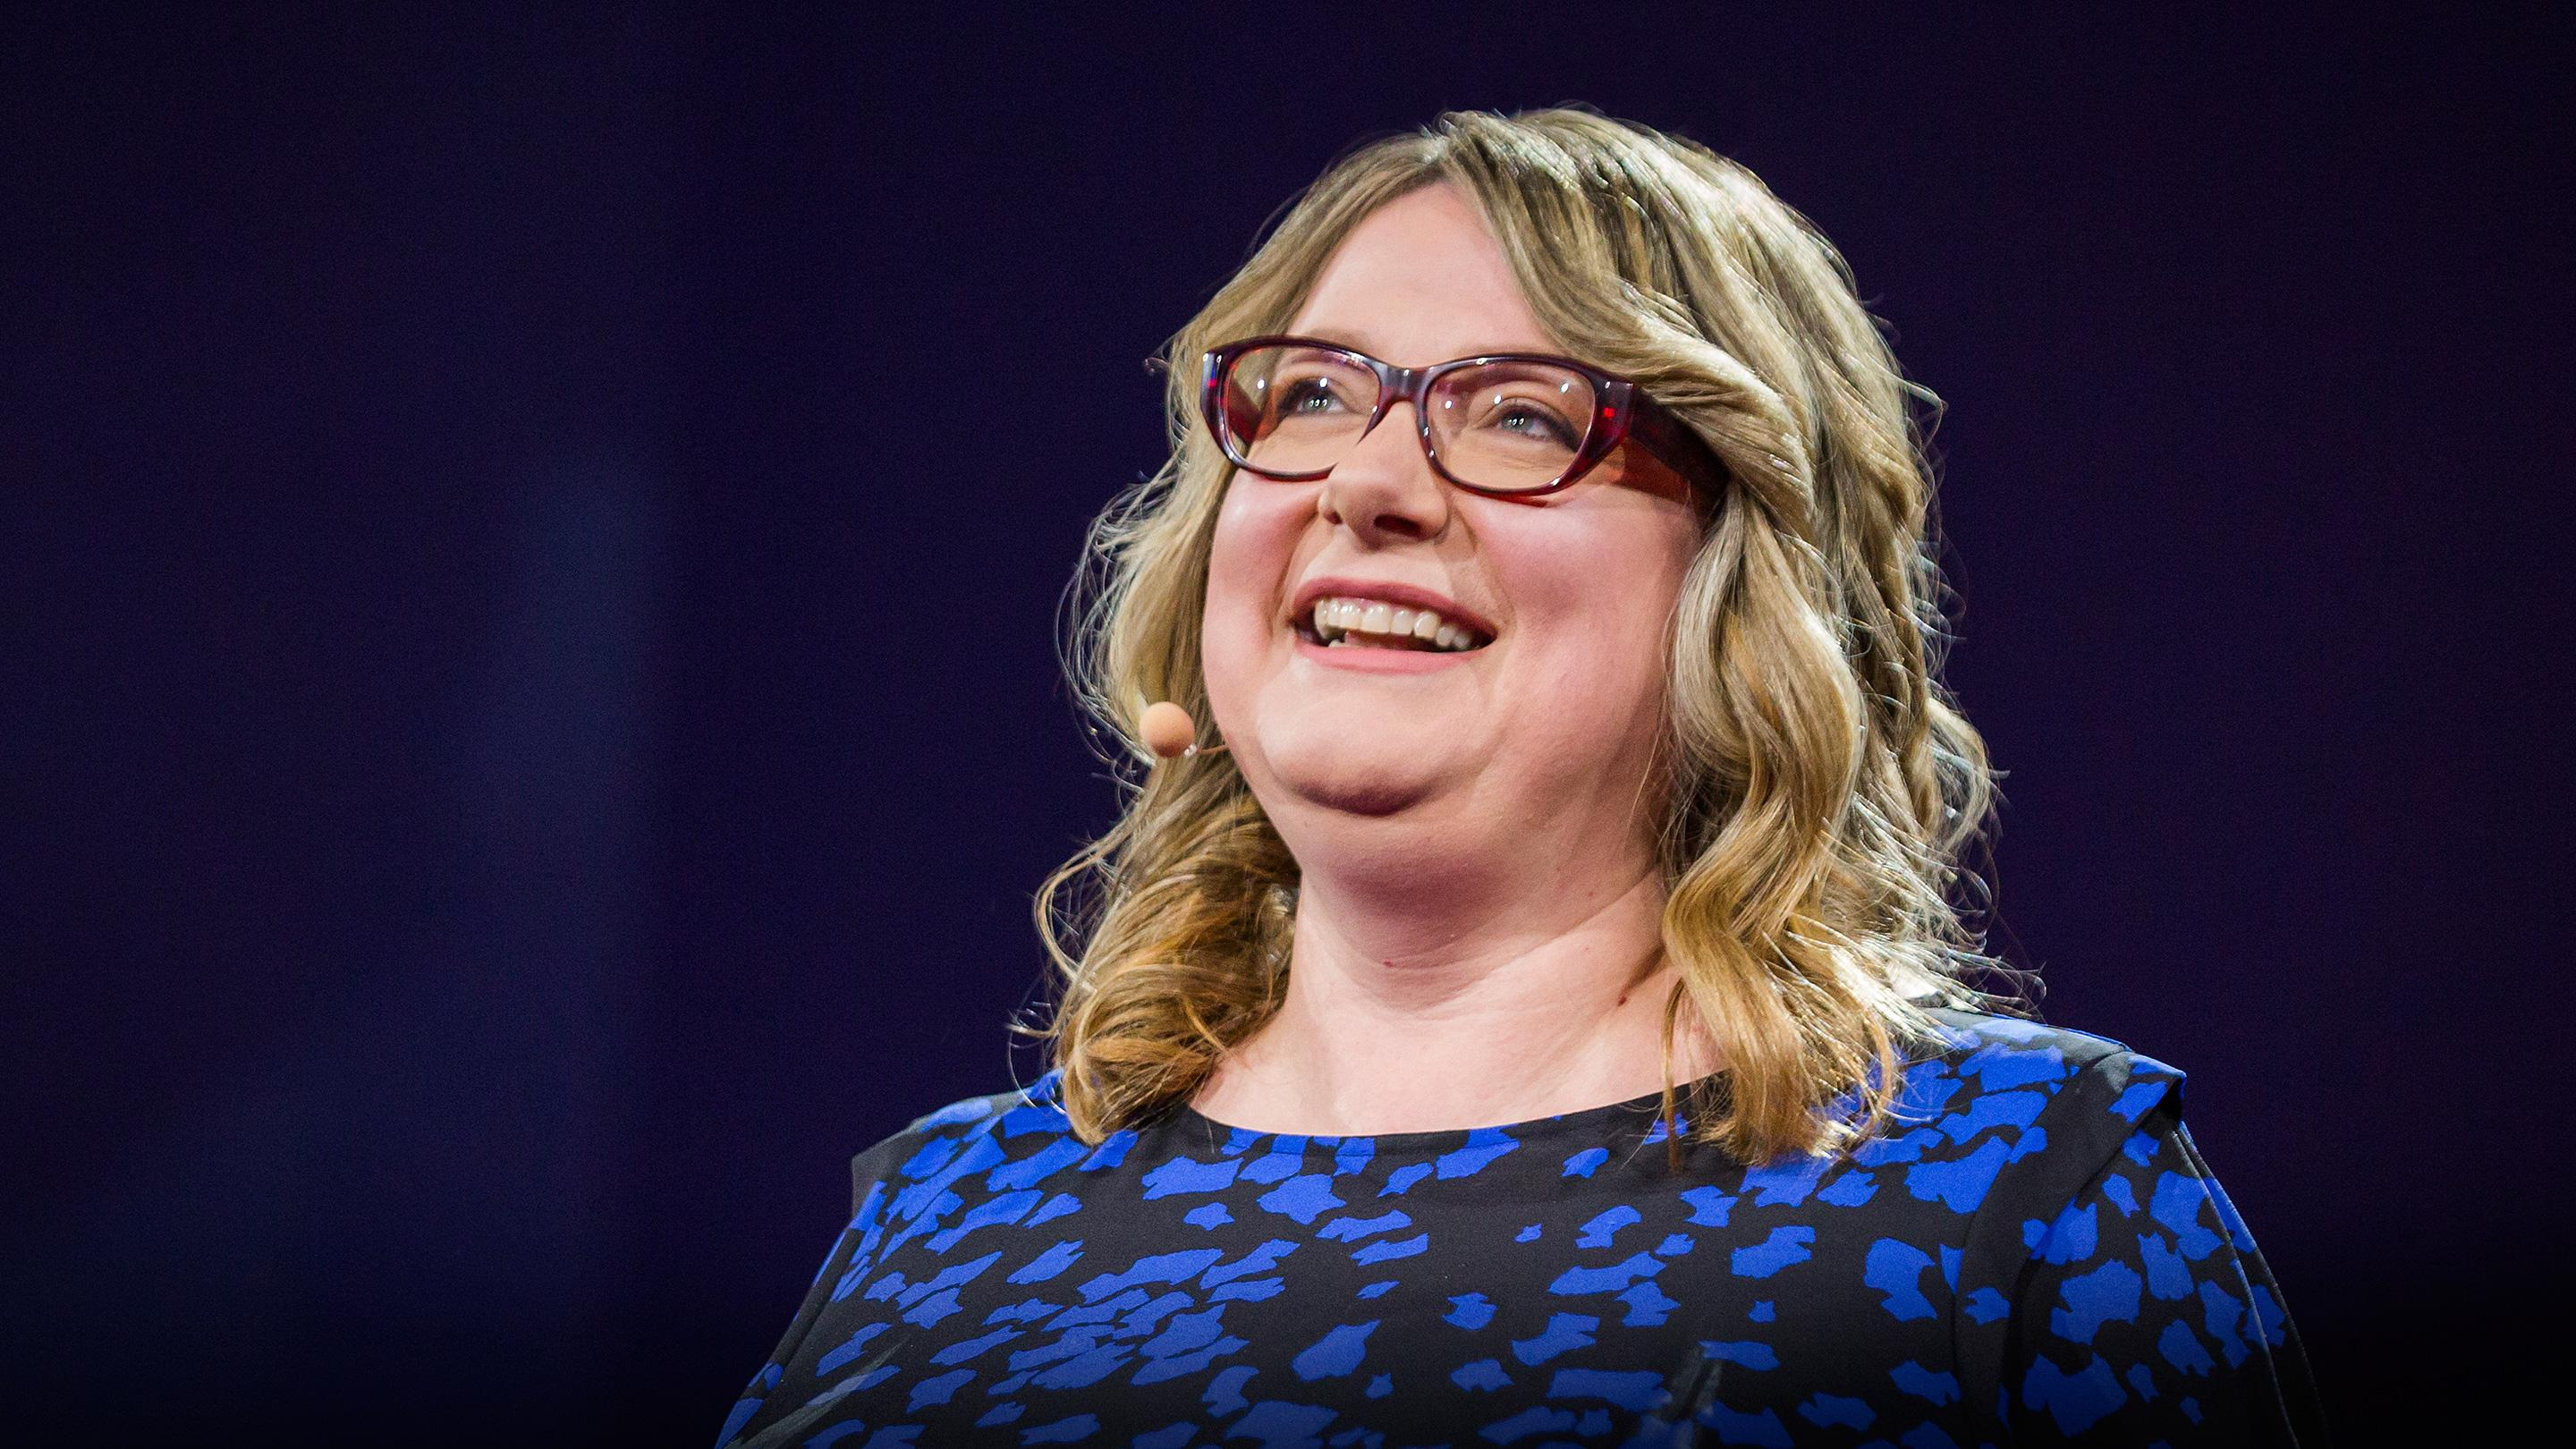 Talk by Sophie Scott at TED2015